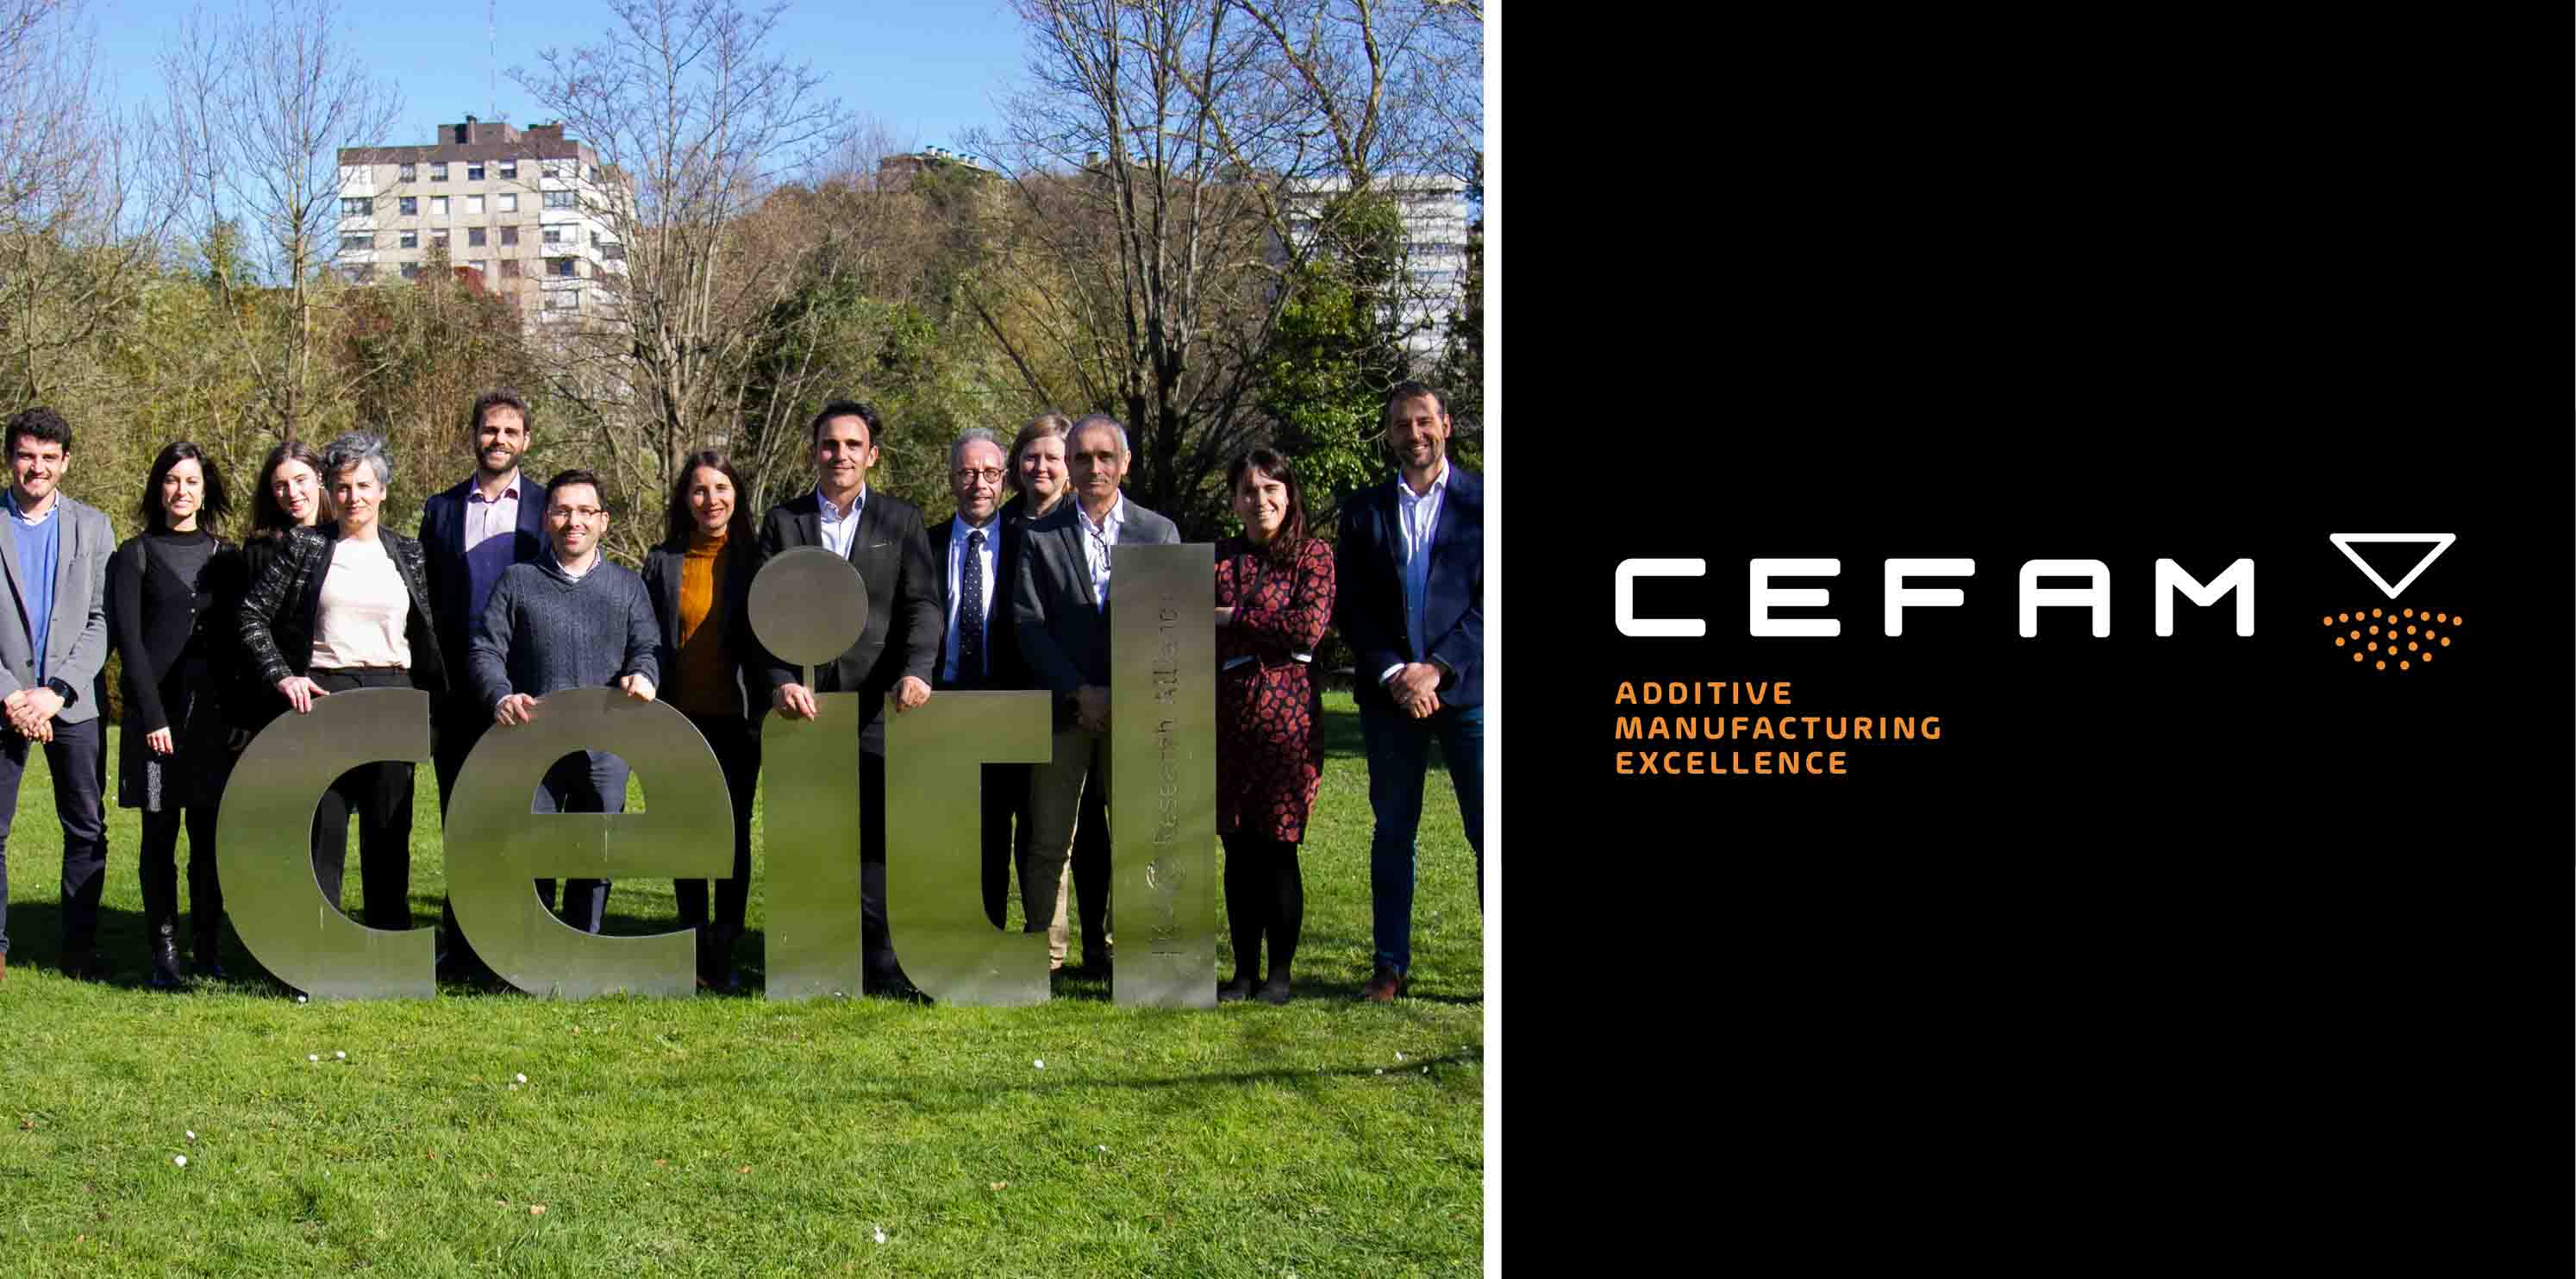 The CEFAM project launches in a bid to boost additive manufacturing